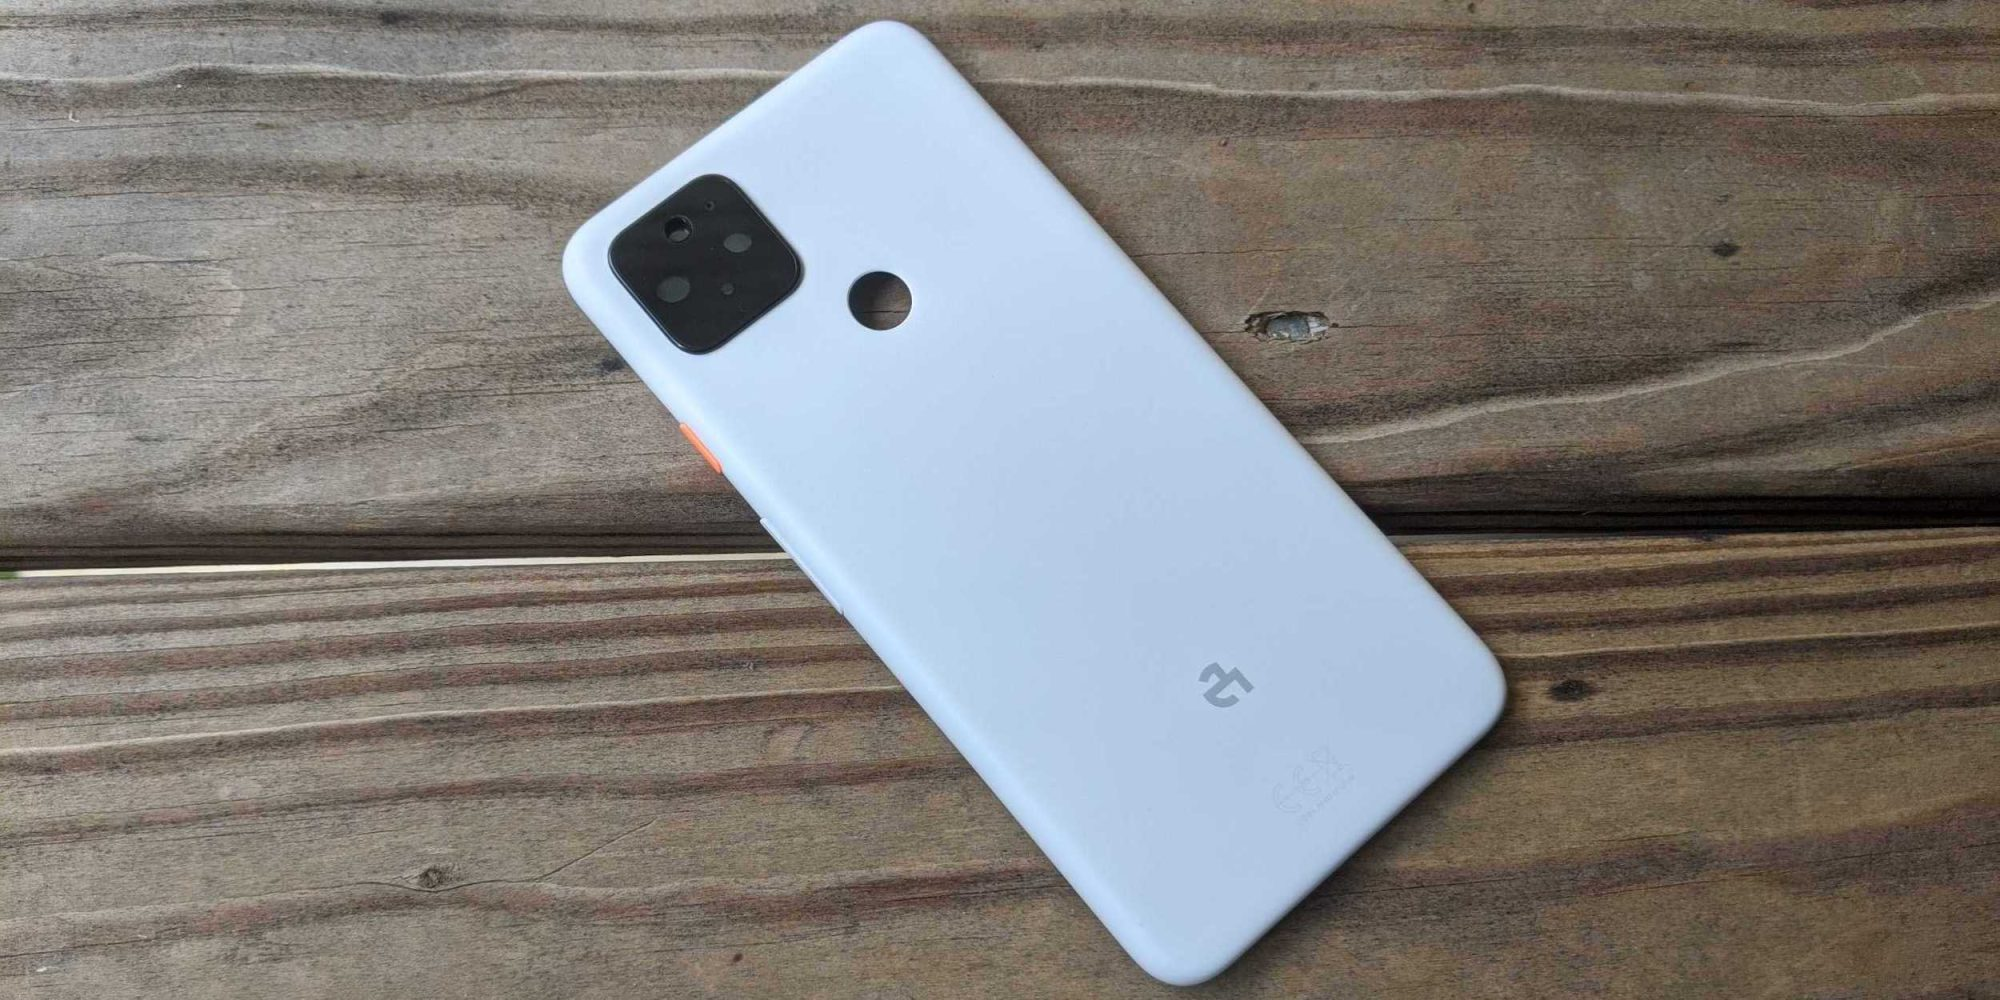 Hands on photos of the Pixel 4a XL that nearly was